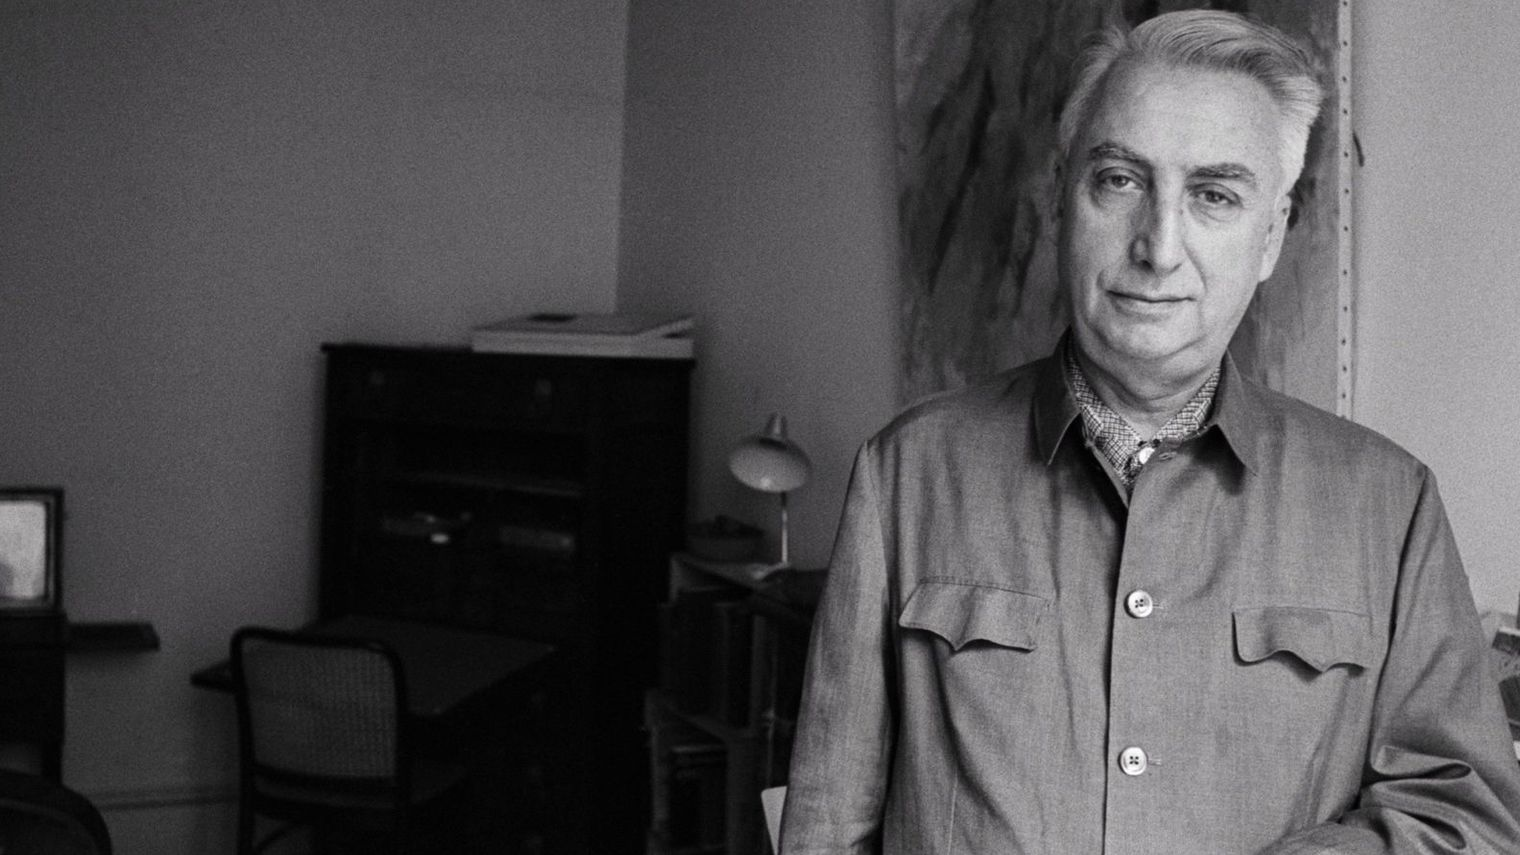 Quand roland barthes met les choses au clair thomas hammoudi for Chambre claire roland barthes